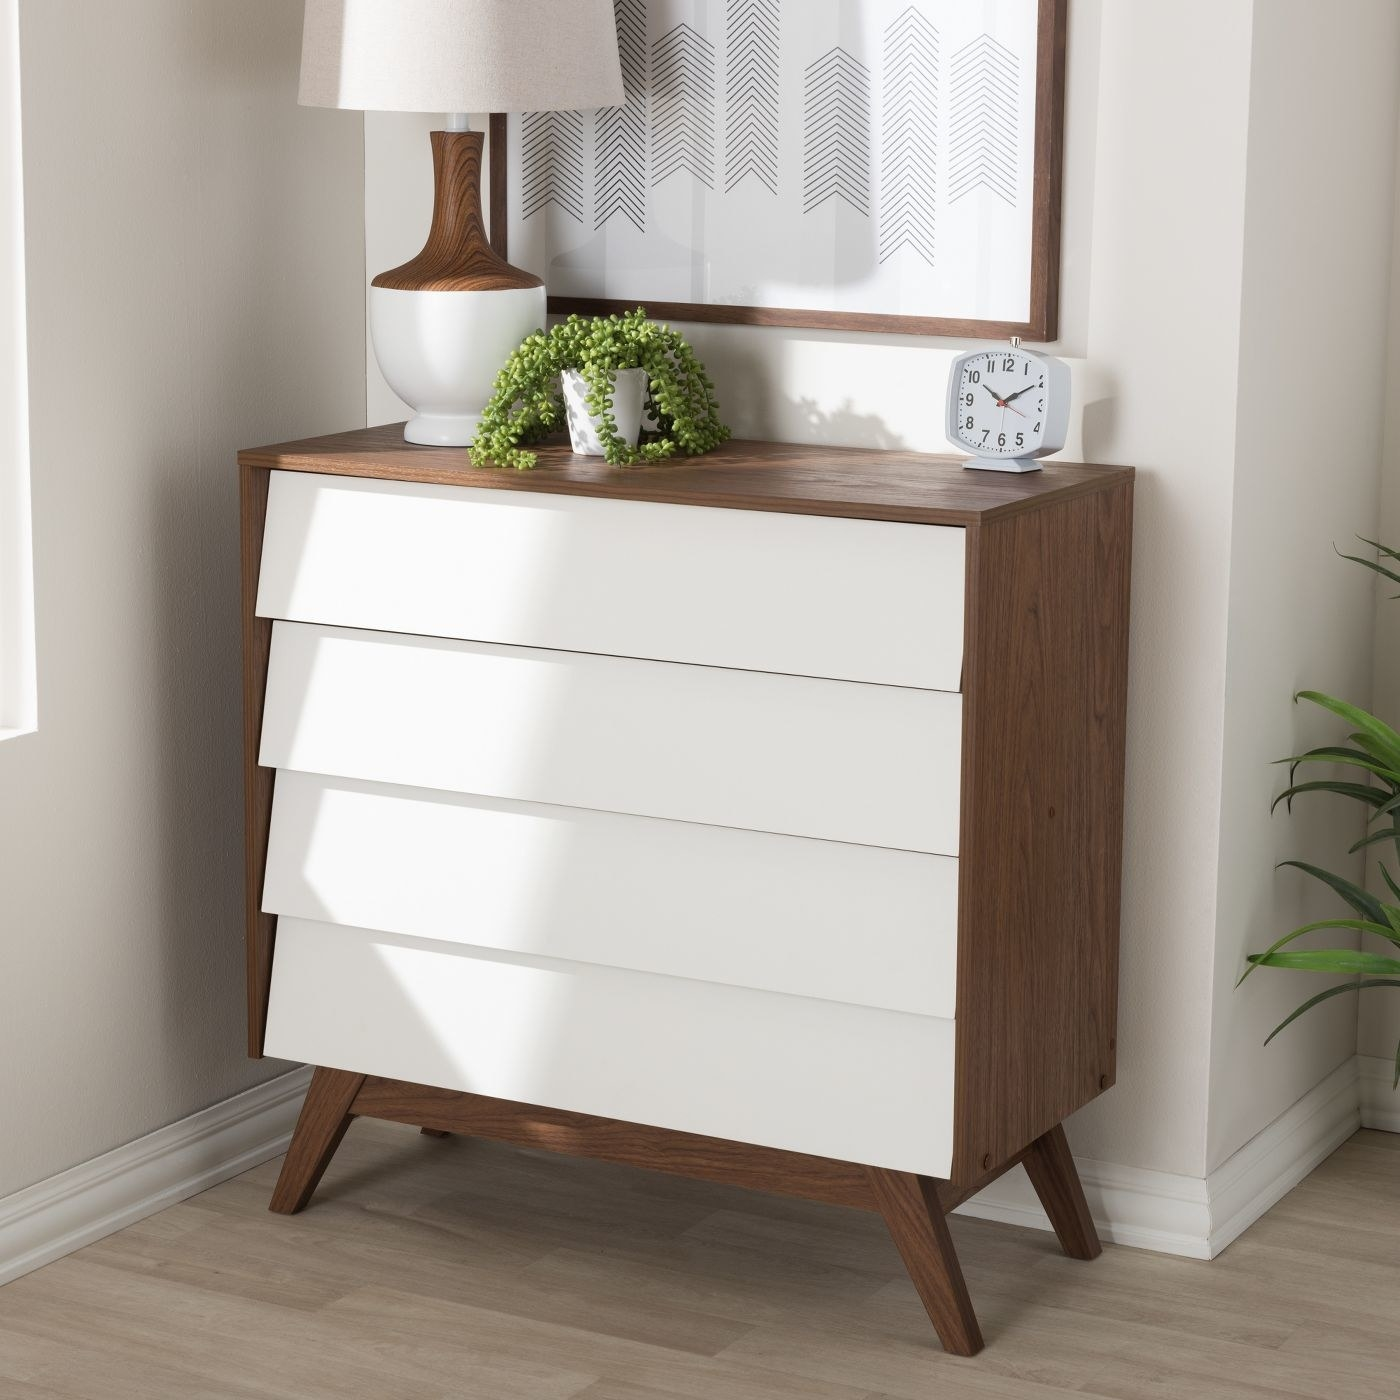 A four drawer dresser with a two tone finish in walnut and white